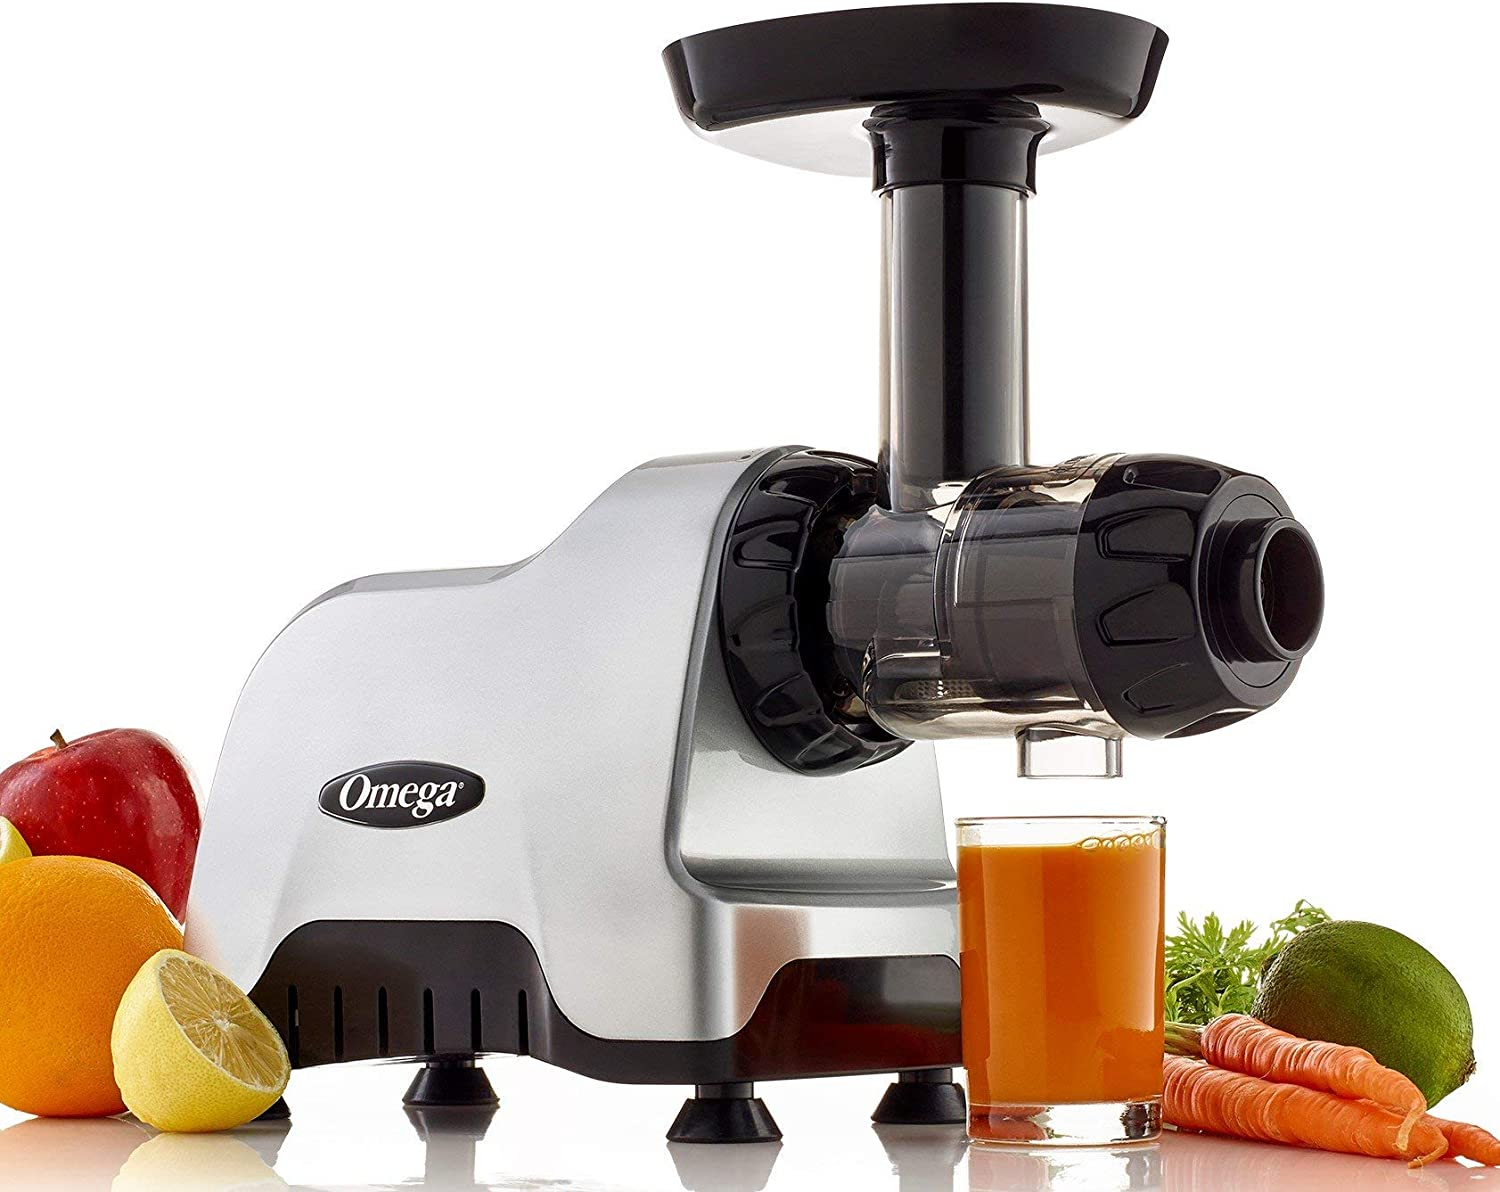 Omega Juicers CNC80S Compact Slow Speed Multi-Purpose Nutrition Center Juicer with Quiet Motor 200-Watts Silver (Renewed)